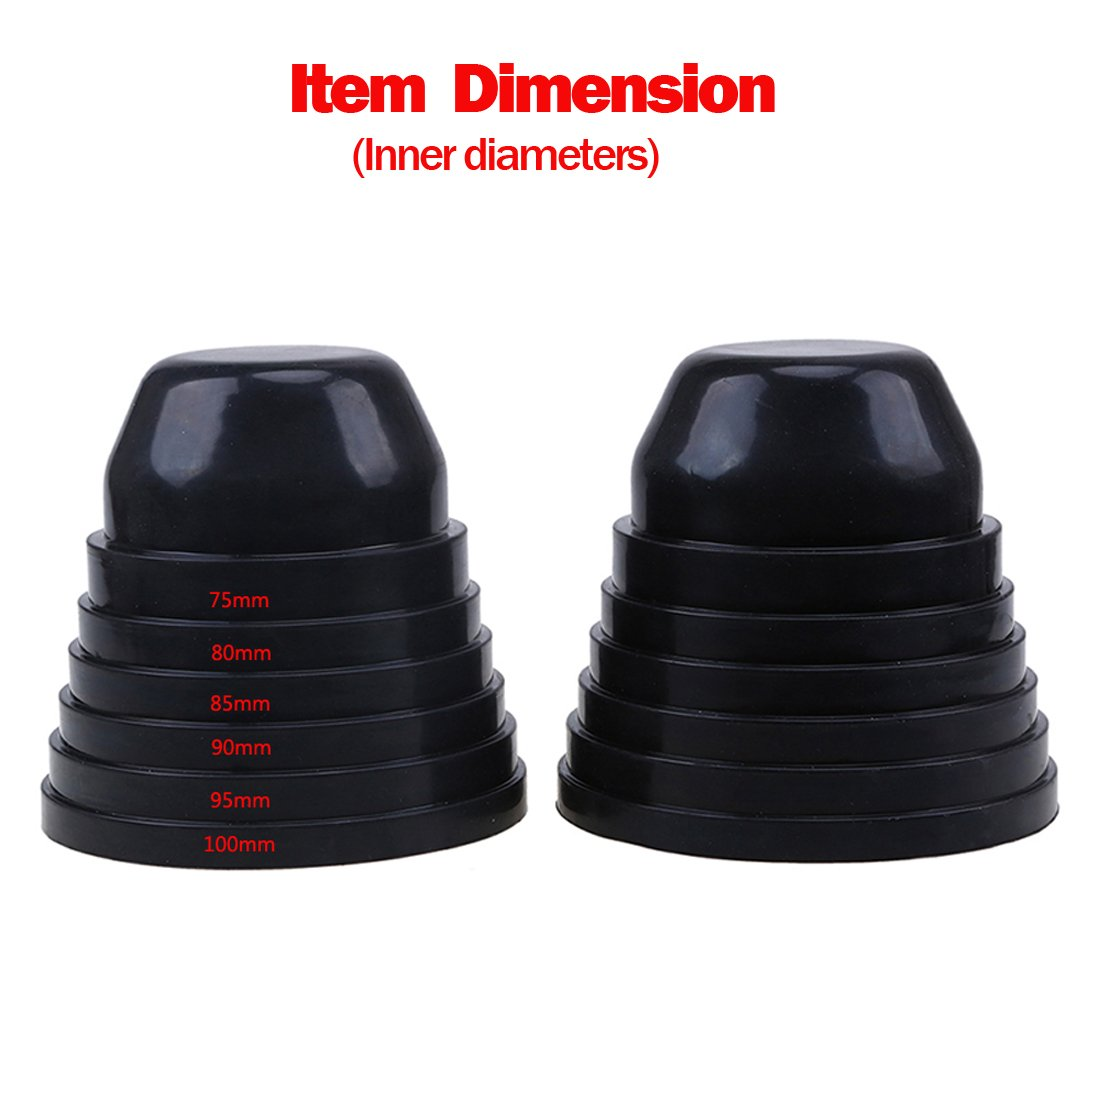 KOOMTOOM LED Headlight Dust Cover Rubber Cap LED Xenon Flexible Car Headlight Dustproof Housing Shell Cap 75mm 80mm 85mm 90mm 95mm 100mm